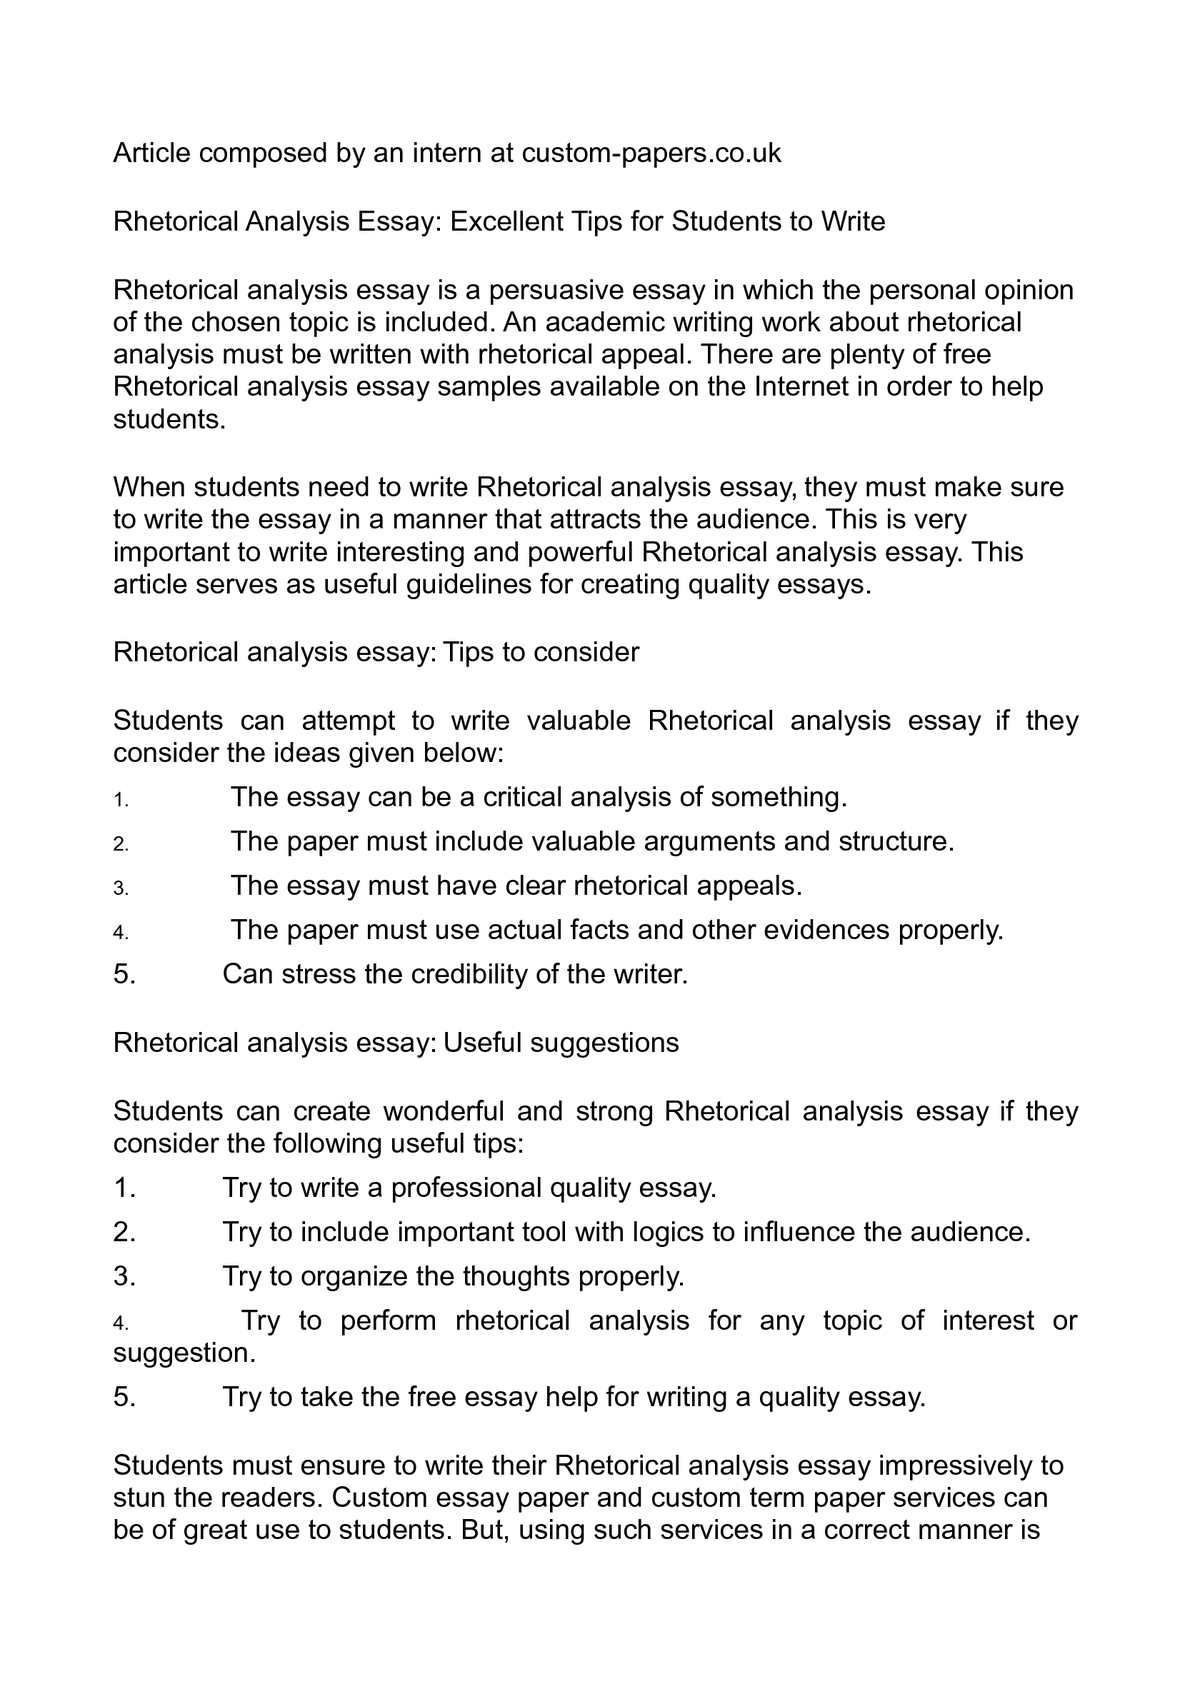 examples of rhetorical analysis essays View and download rhetorical analysis essays examples also discover topics, titles, outlines, thesis statements, and conclusions for your rhetorical analysis essay.